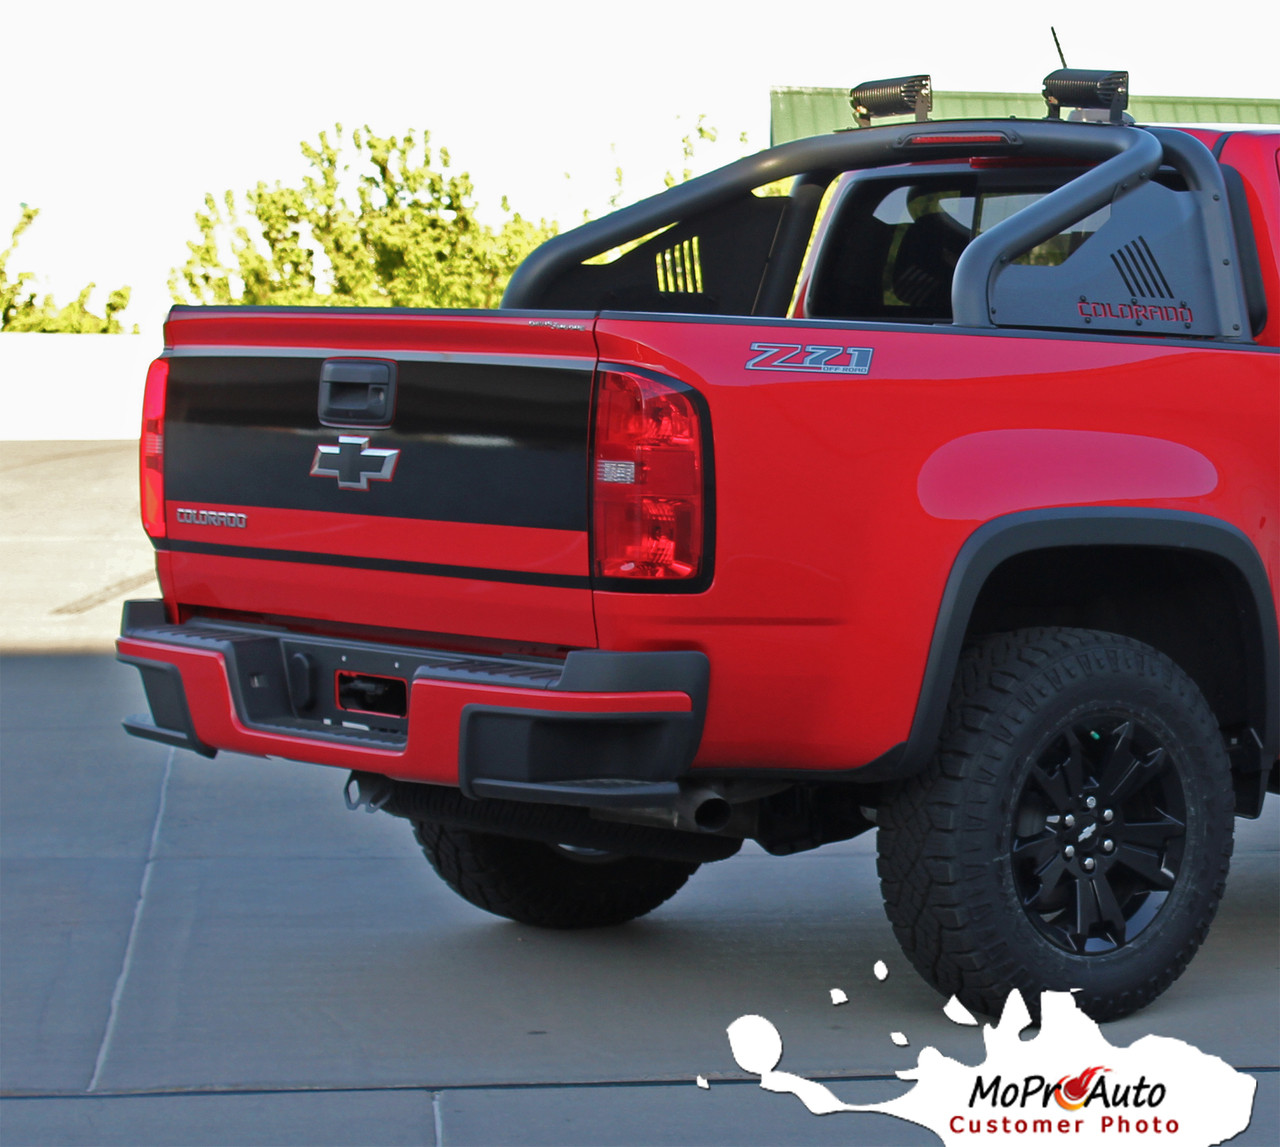 GRAND - Chevy Colorado Vinyl Graphics, Stripes and Decals Package by MoProAuto Pro Design Series